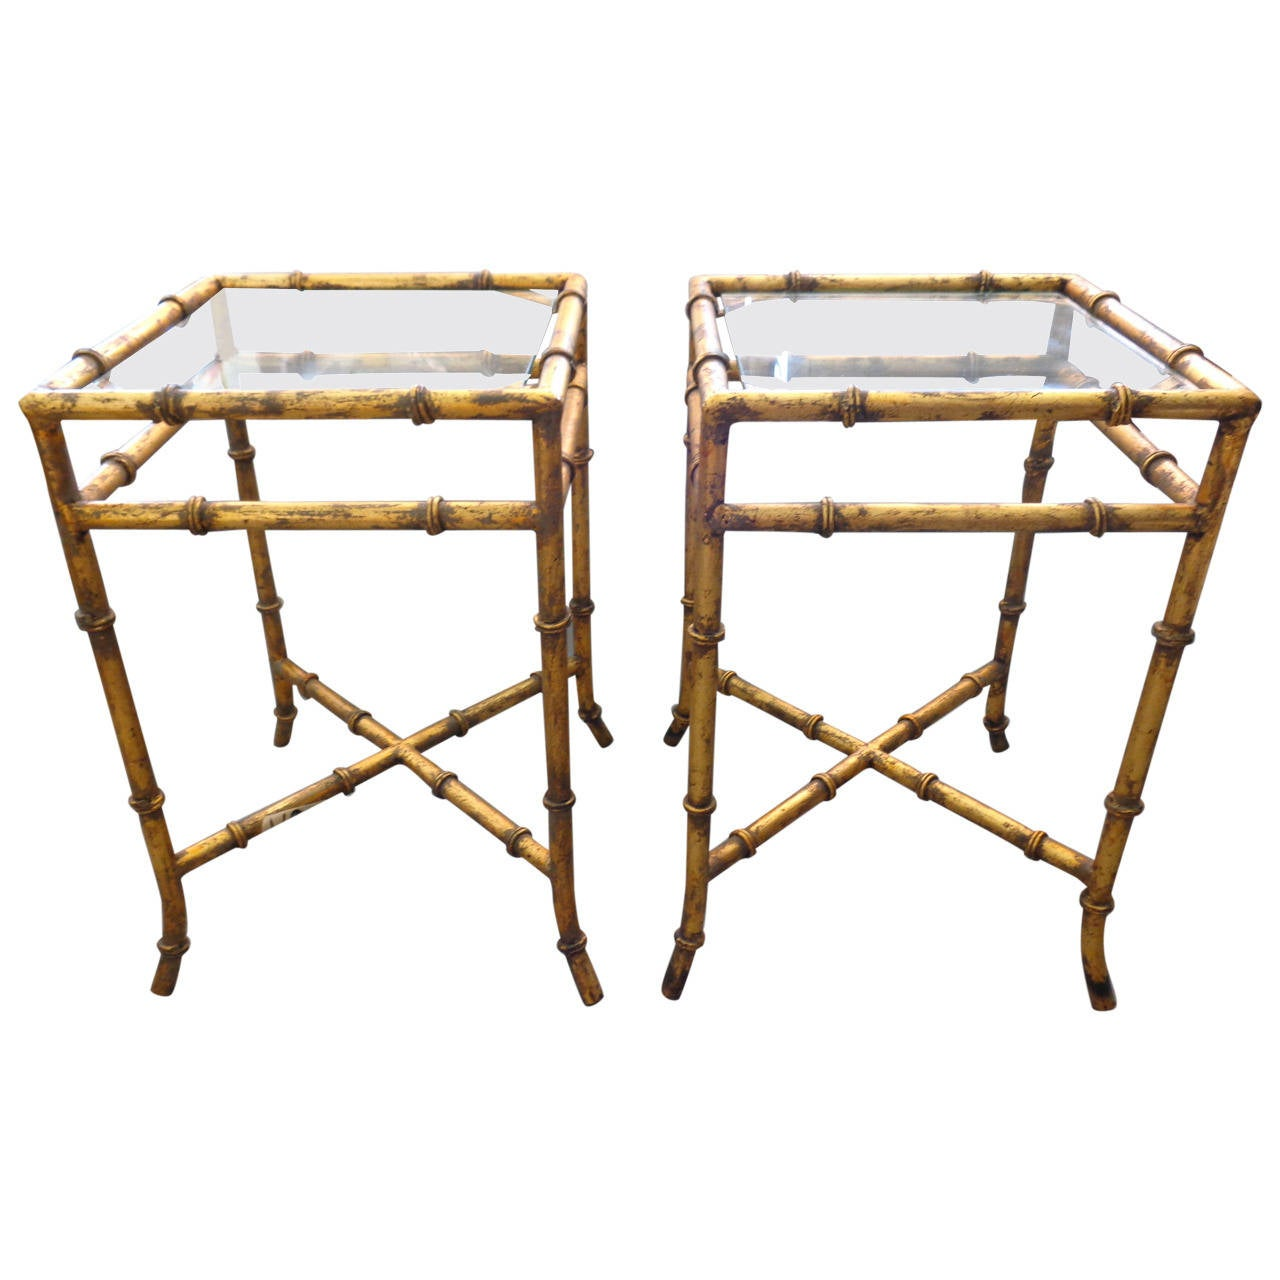 Bamboo Gold Table: Pair Of Faux Bamboo Gold Gilt Tables At 1stdibs